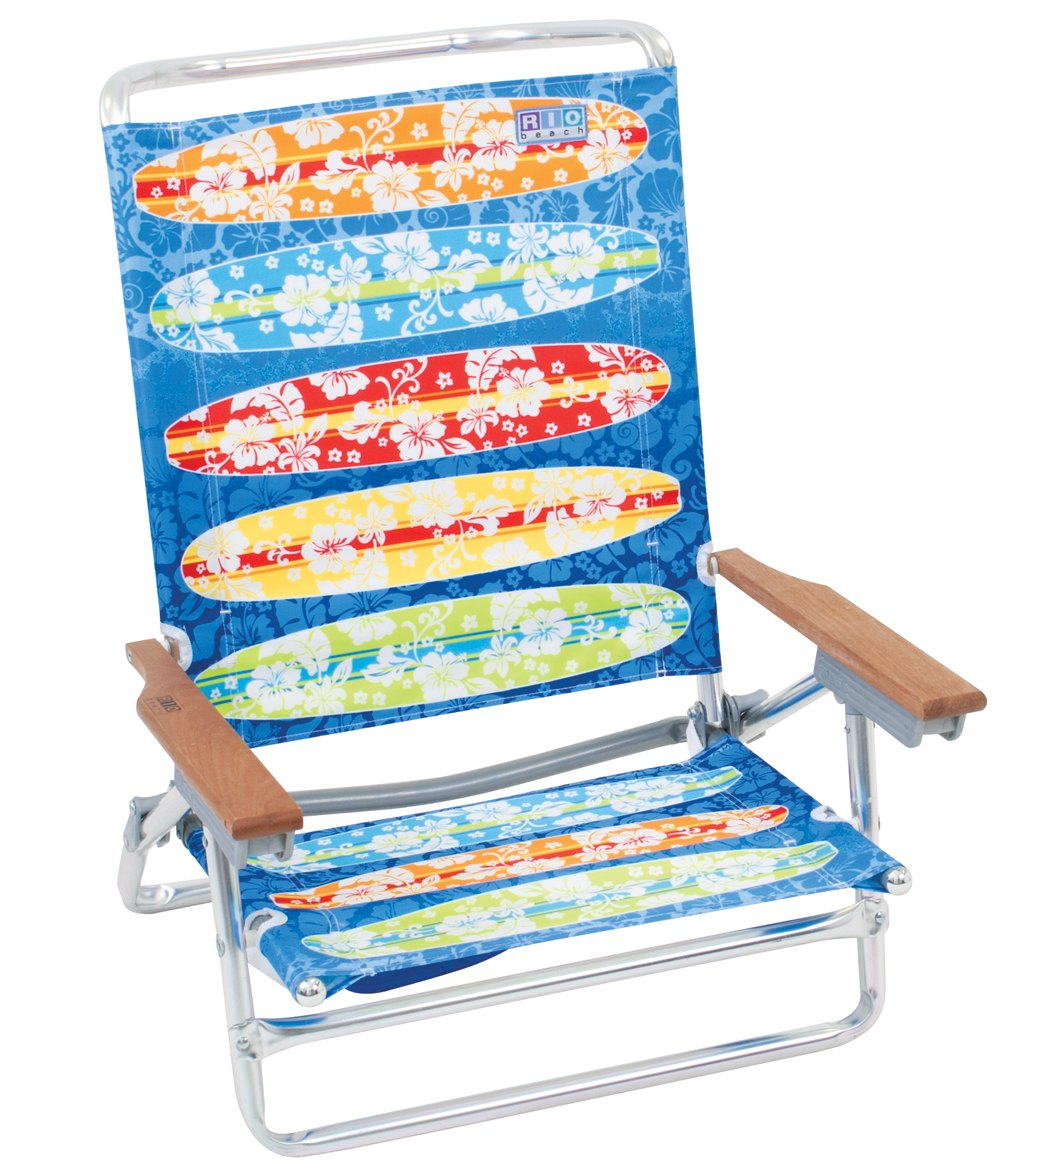 Rio Brands Kowabunga Surf Board Print Classic 5 Position Lay Flat Beach Chair at SwimOutlet